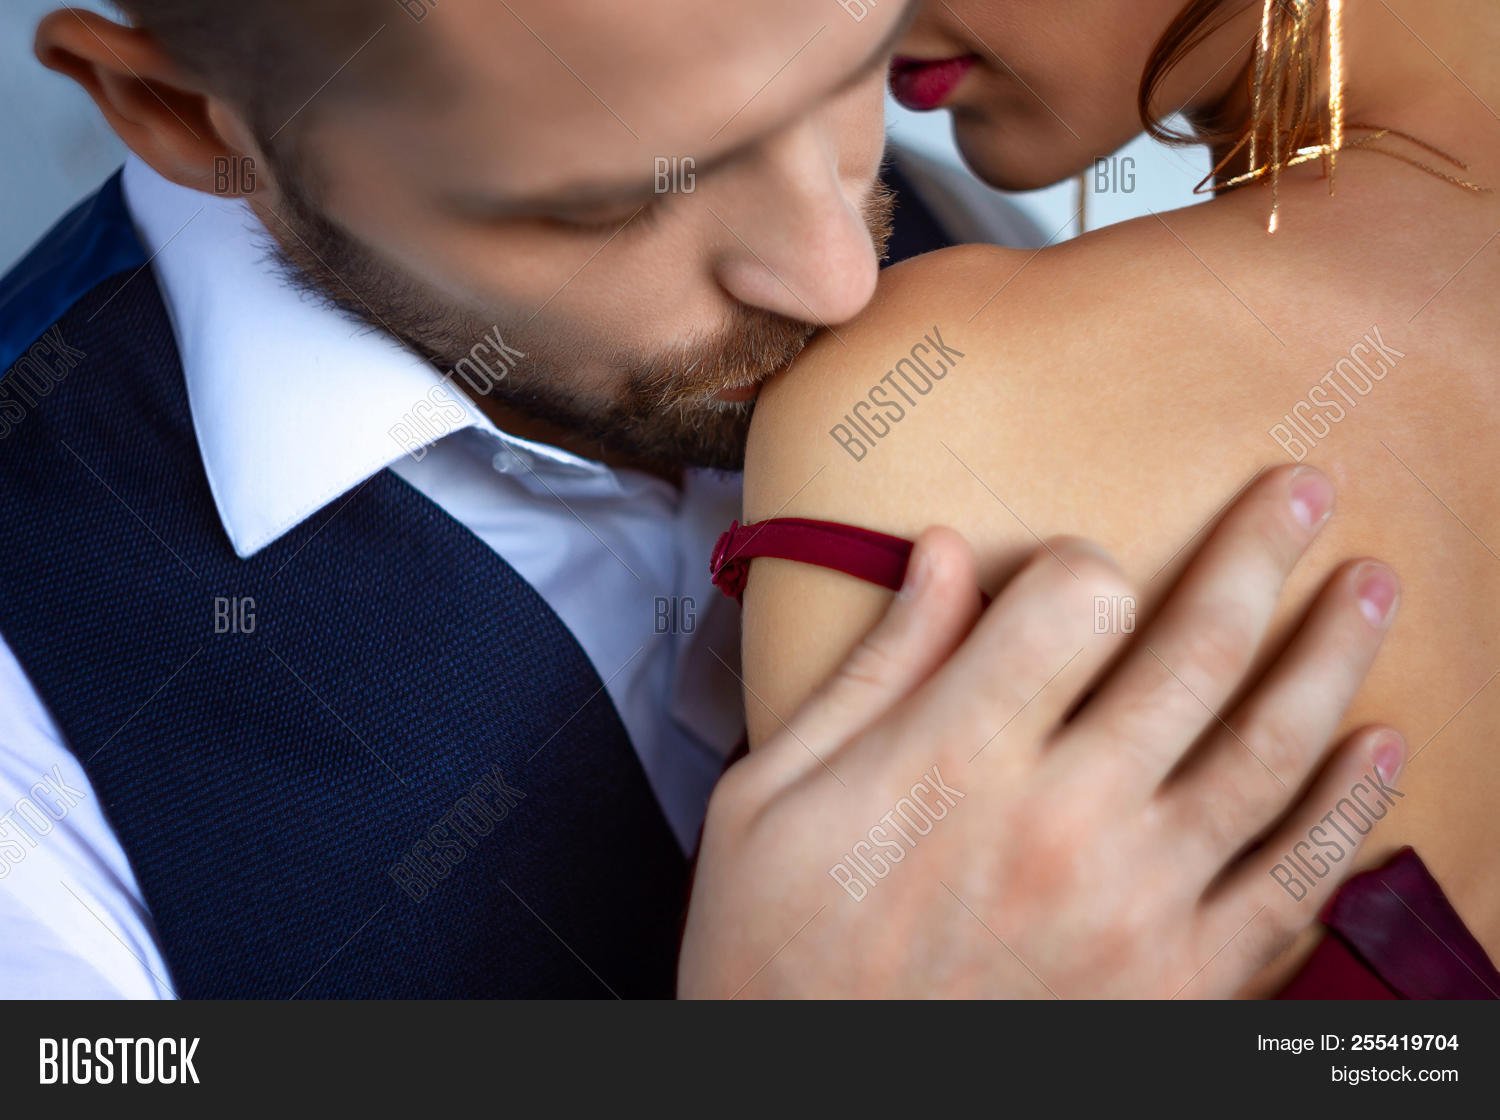 f3400a381 Elegant couple in love. Rich tidy neat man male kissing in shoulder of luxury  woman female in red evening dress with expensive gold earrings.